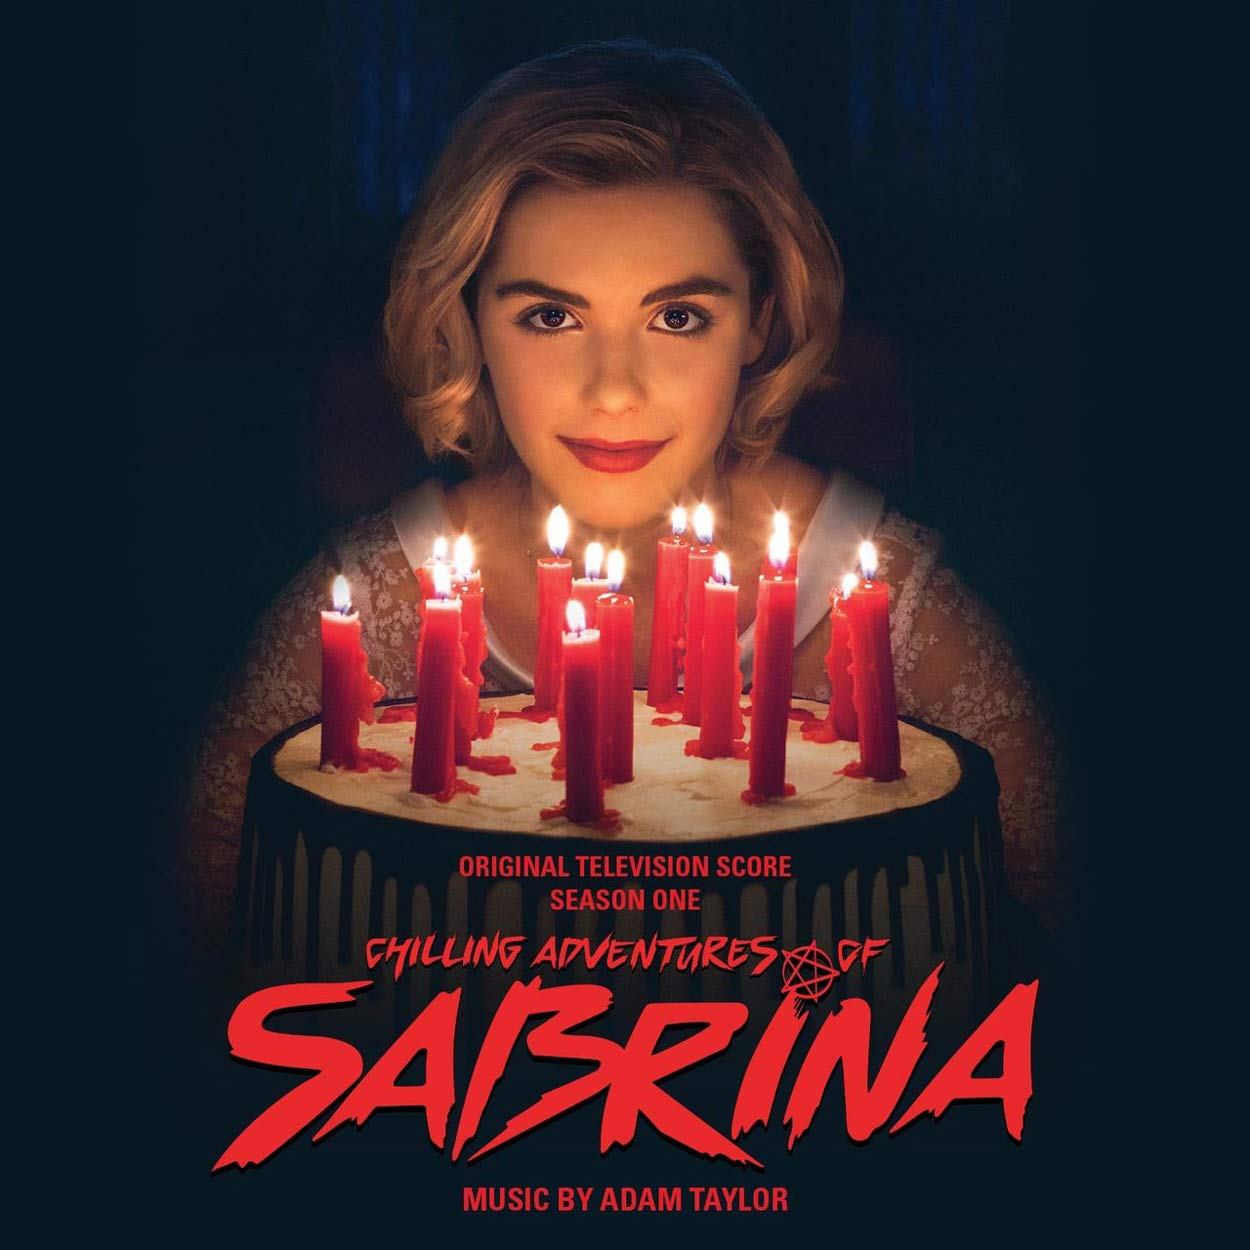 Chilling adventures of Sabrina (The) - Season 1 (2019) (vinile)